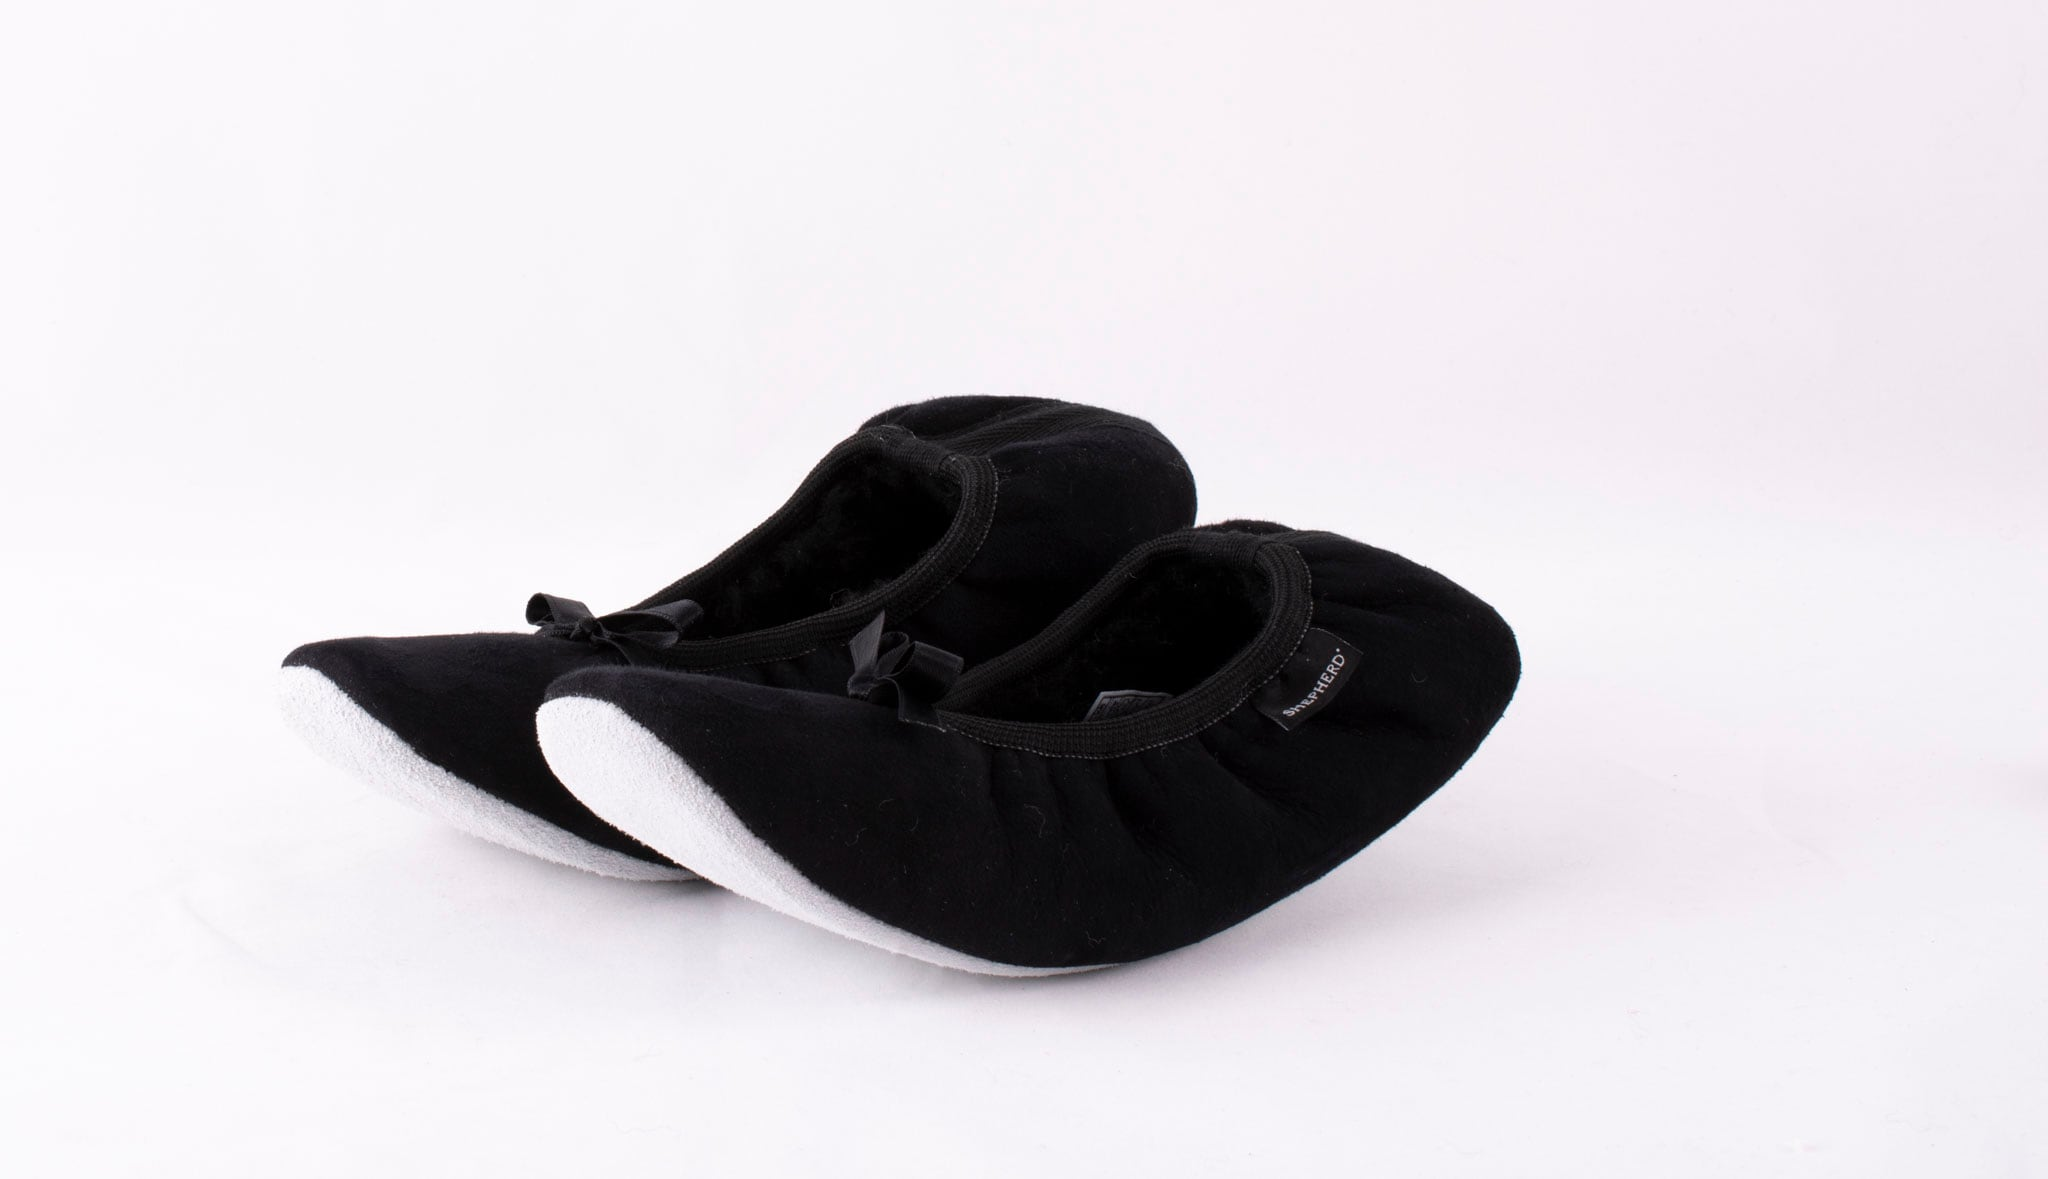 Saga ballerina slipper Black